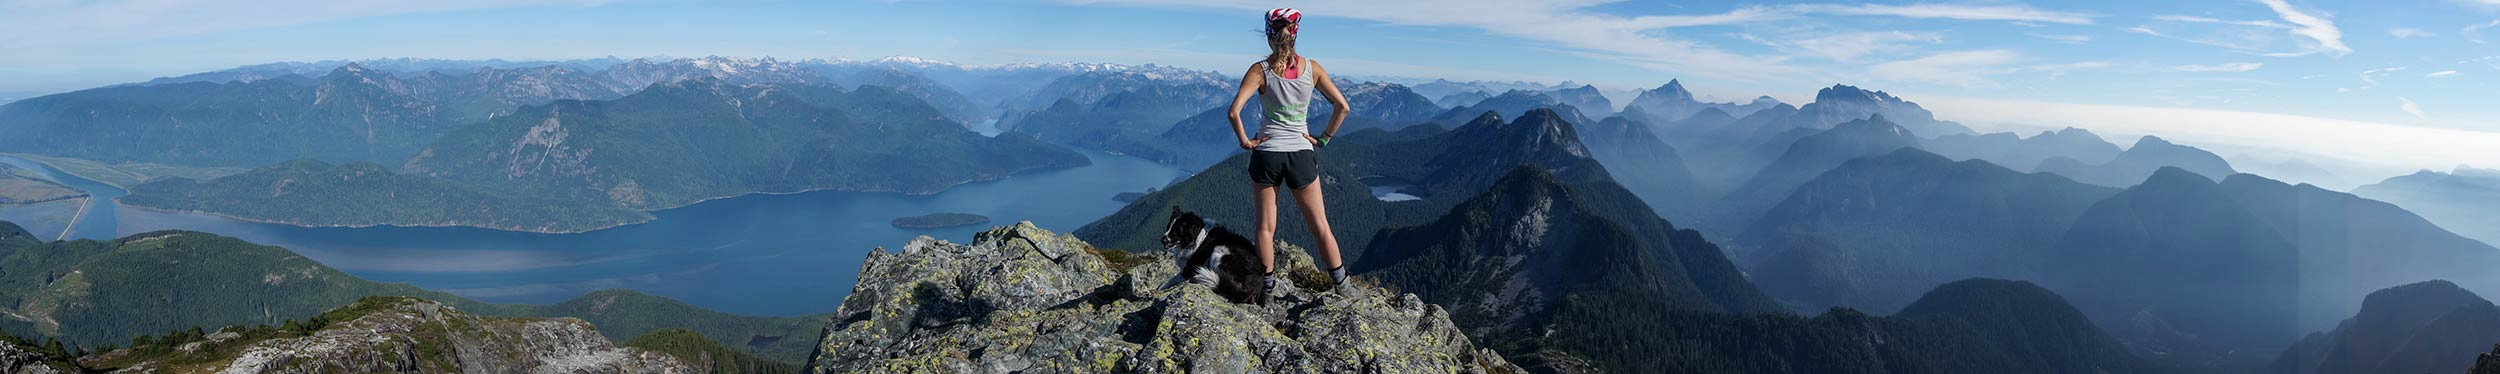 golden_ears_summit_pano_candice_nugget.jpg